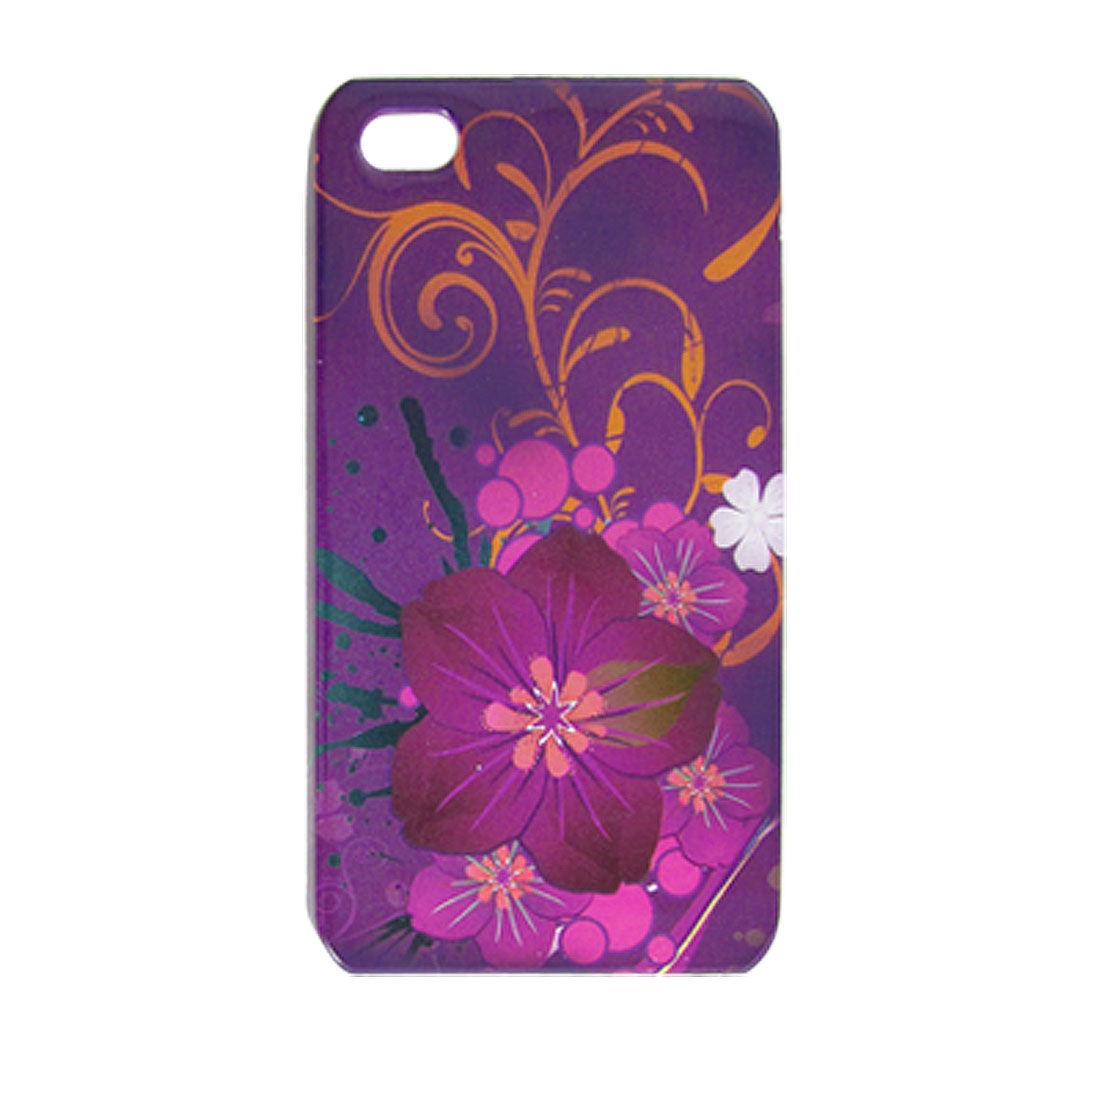 Lilac Hard Plastic Floral Print Back Case for iPhone 4 4G